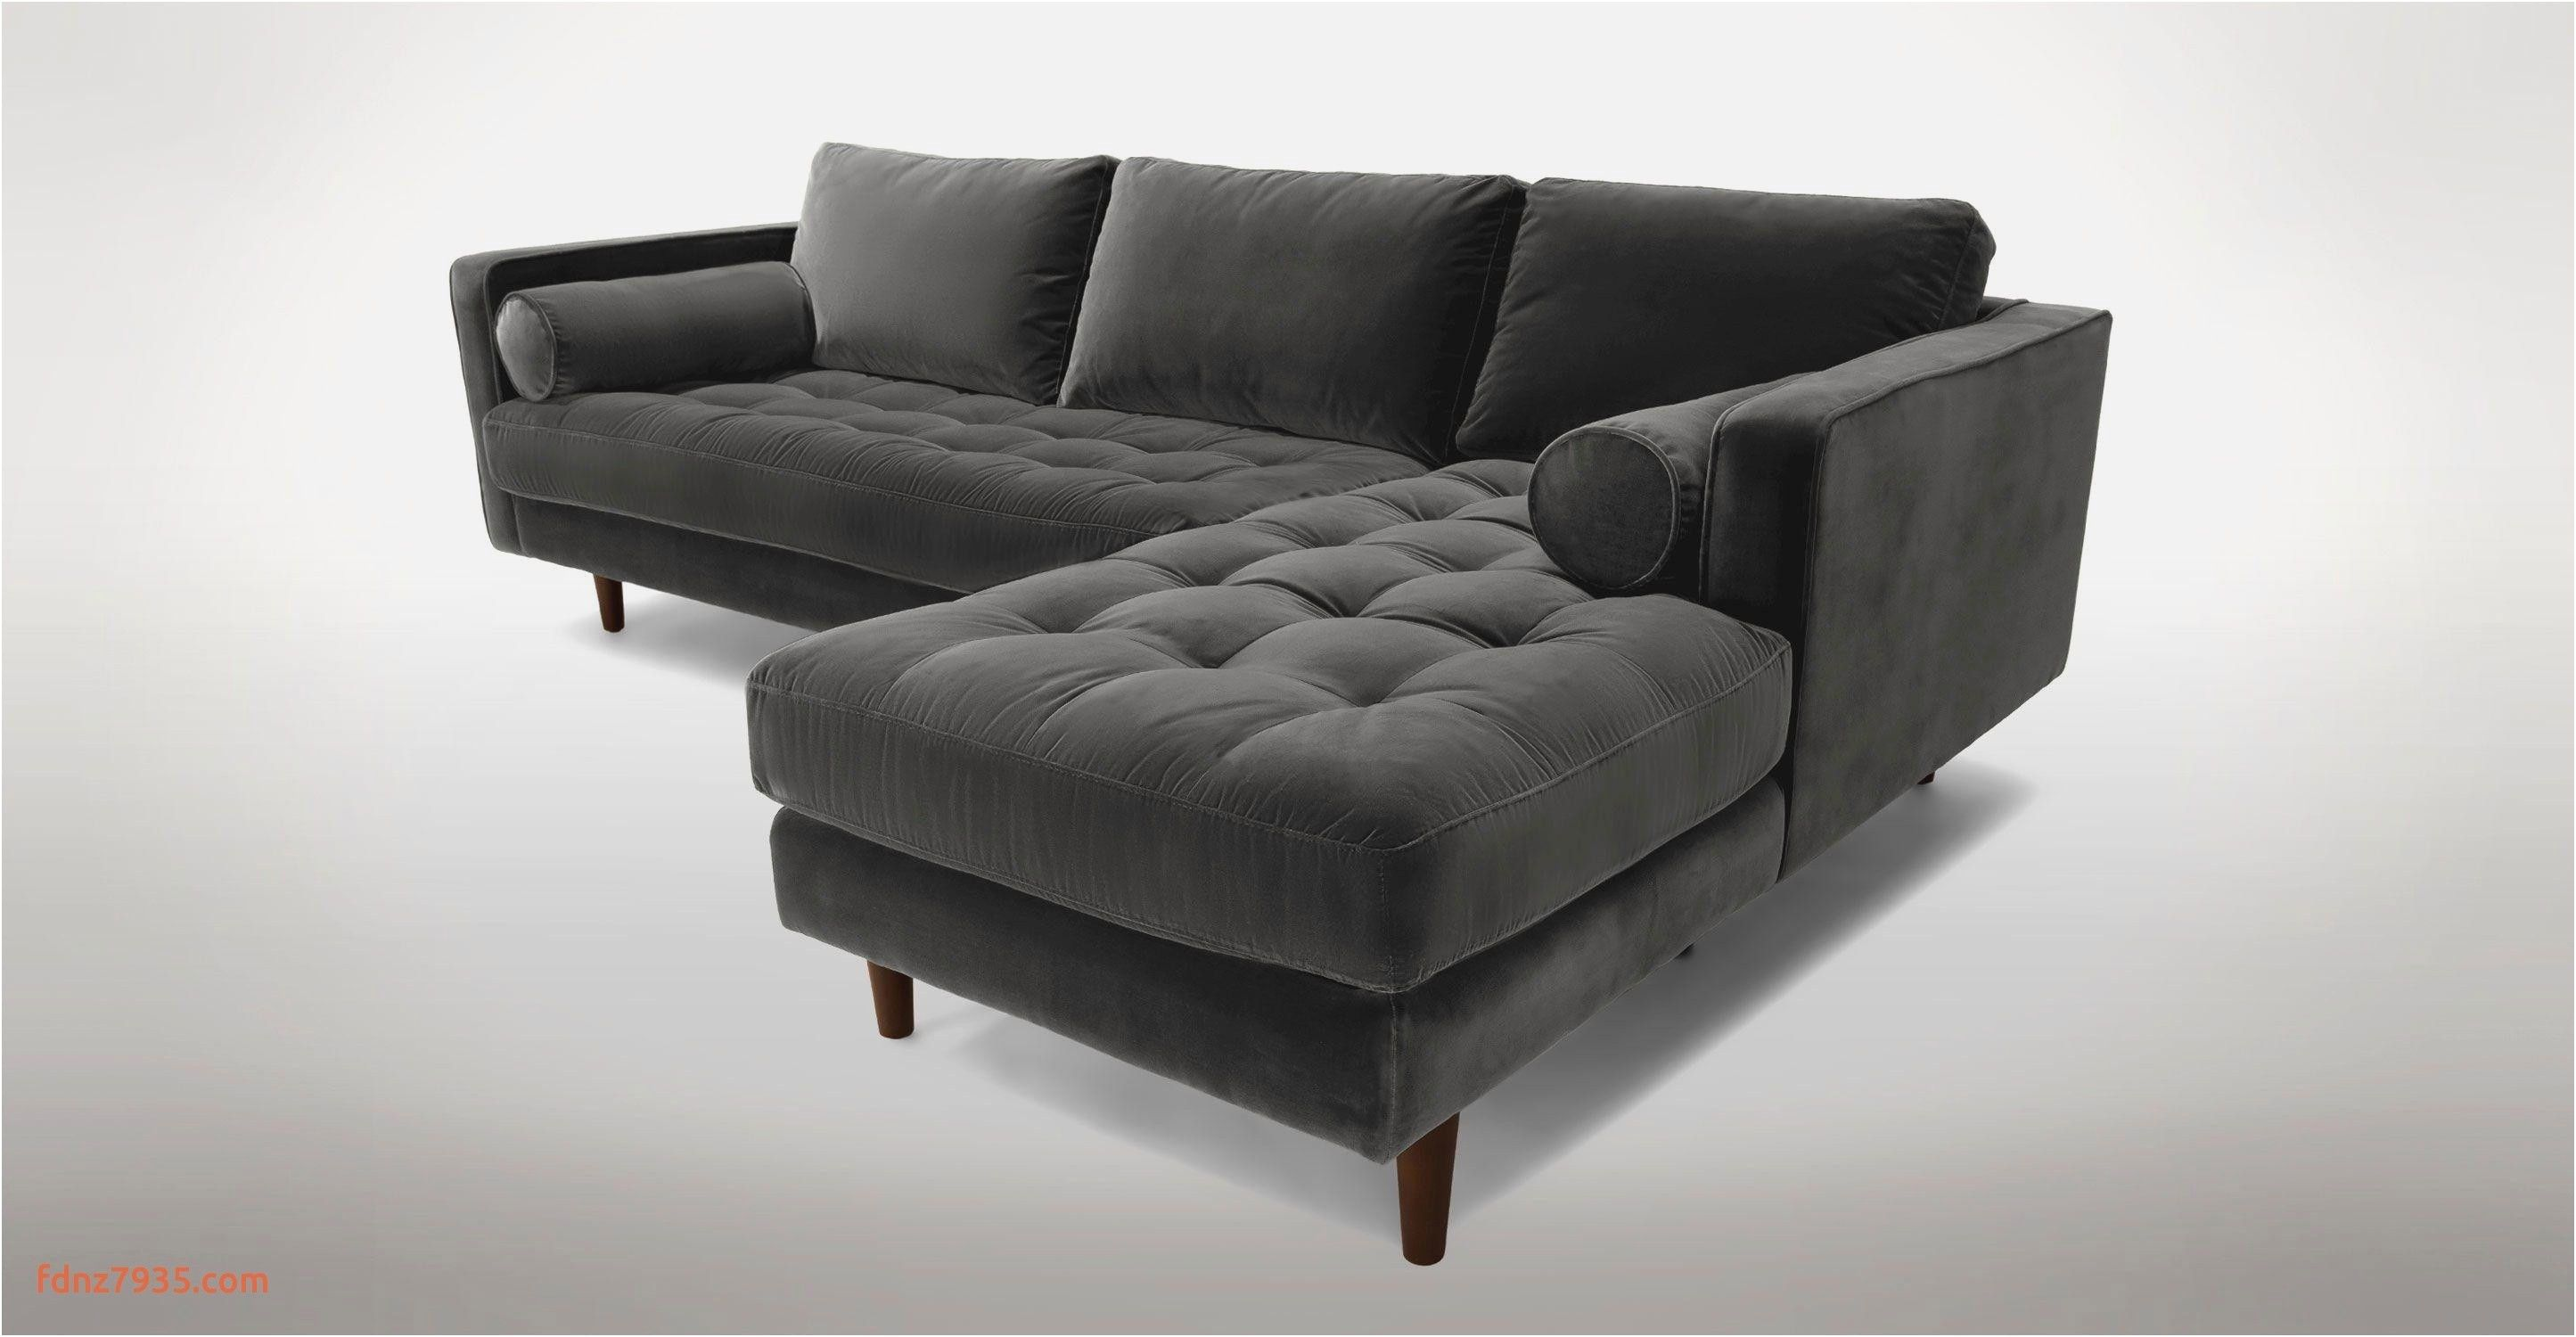 Couch Billig Billig Sofa Couch Unterschied Couch Möbel Sectional Sofa